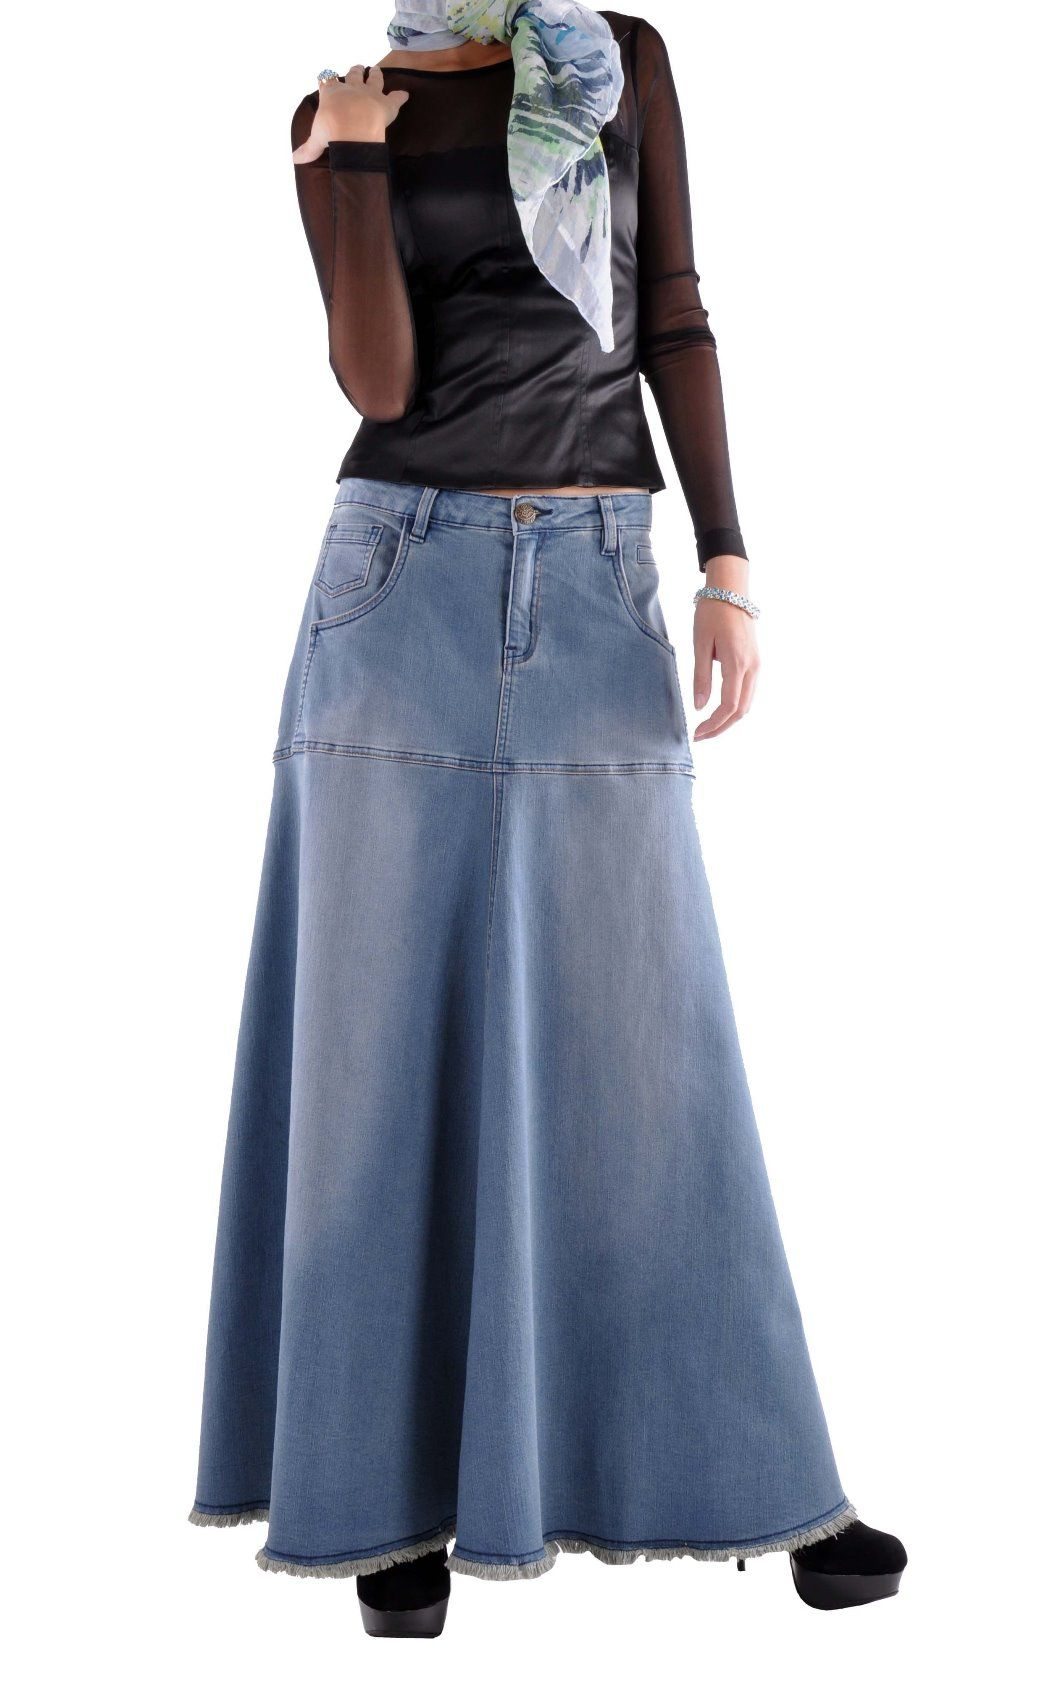 Flowing Love Long Jean Skirt - Plus Size | Wish List | Pinterest ...